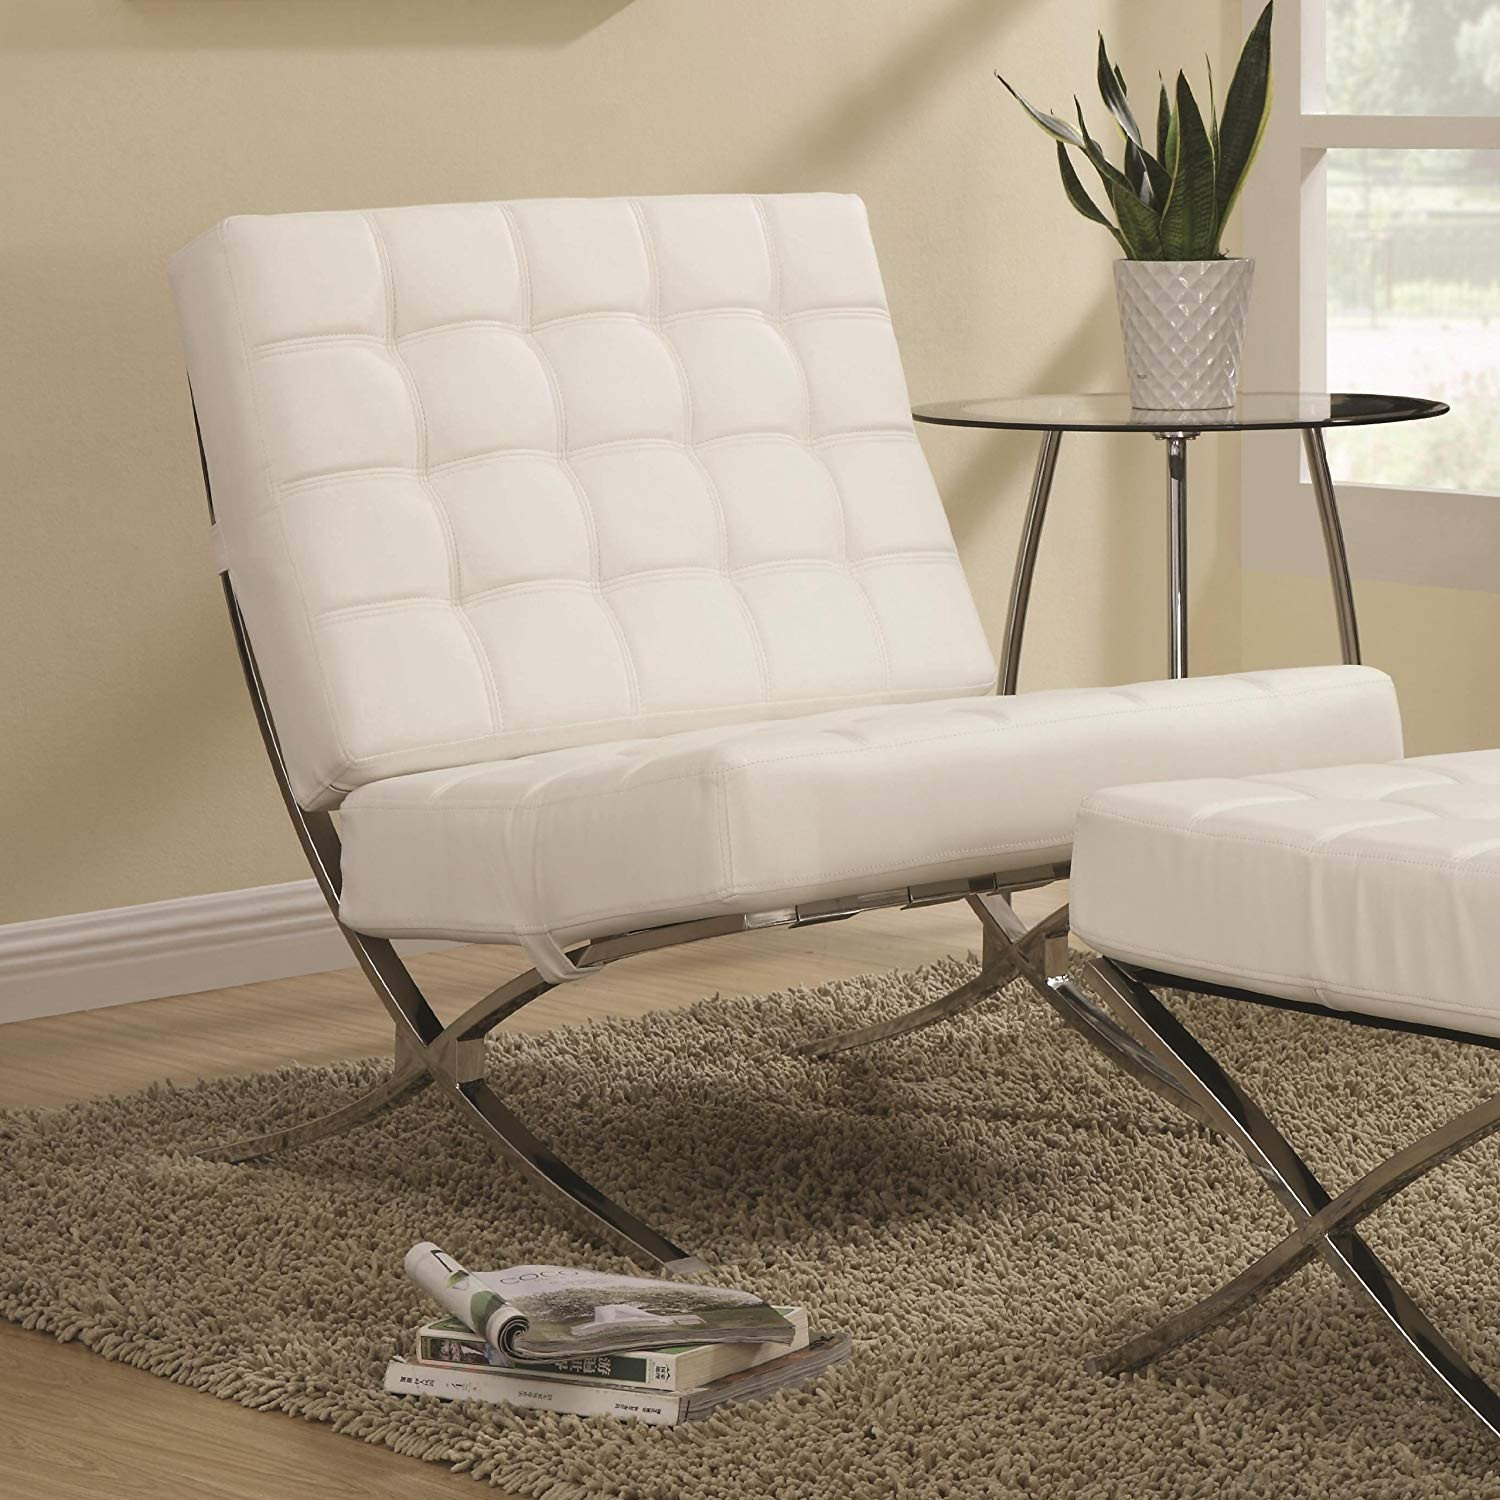 Contemporary Living Room Benches New Accent Chair Lounge Bedroom Living Room Tv Room fortable Furniture Modern